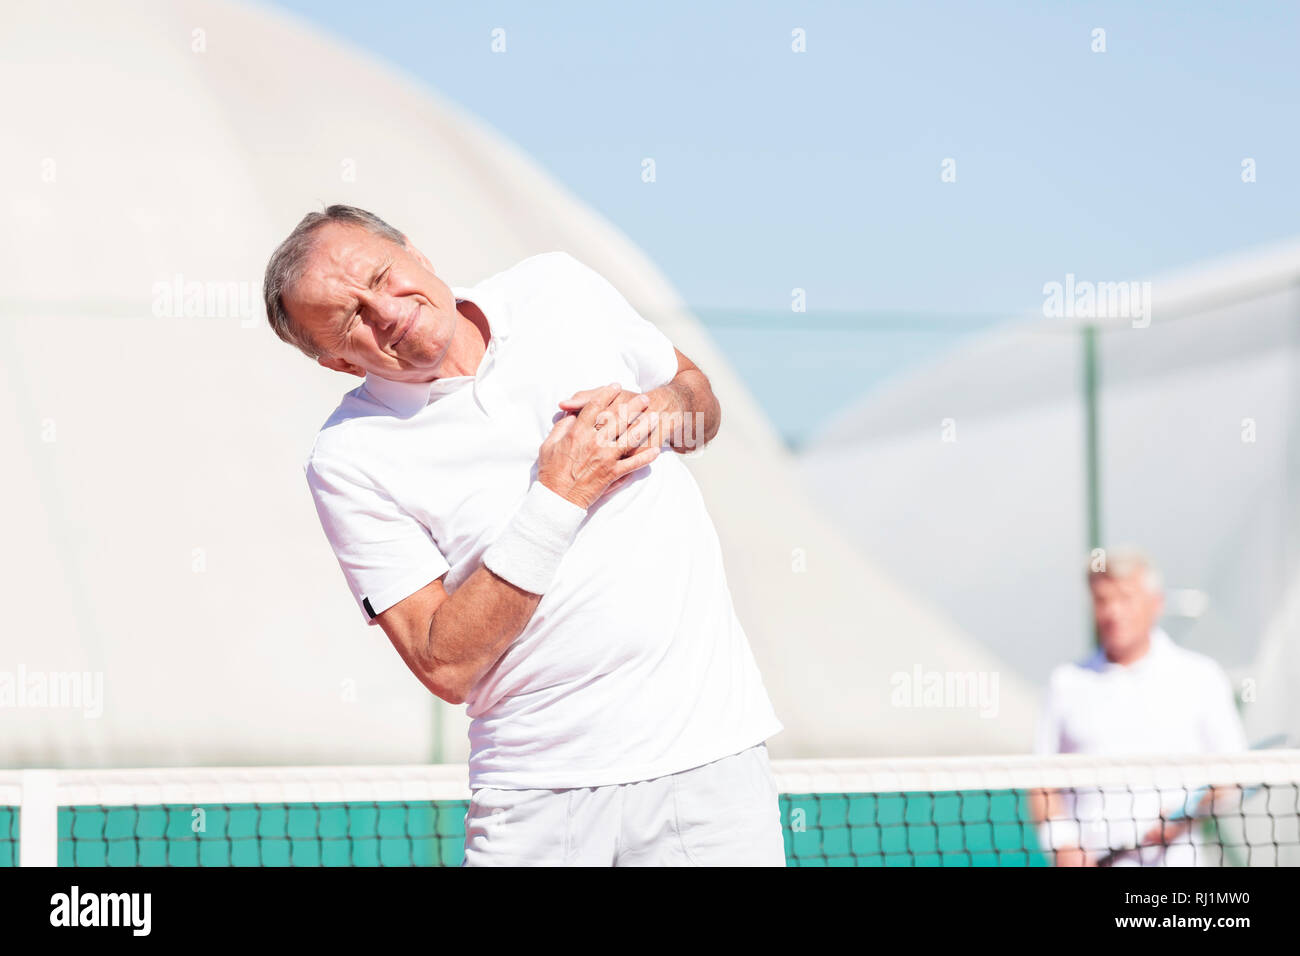 Senior man grimacing with chest pain while standing against friend during tennis match on sunny day - Stock Image